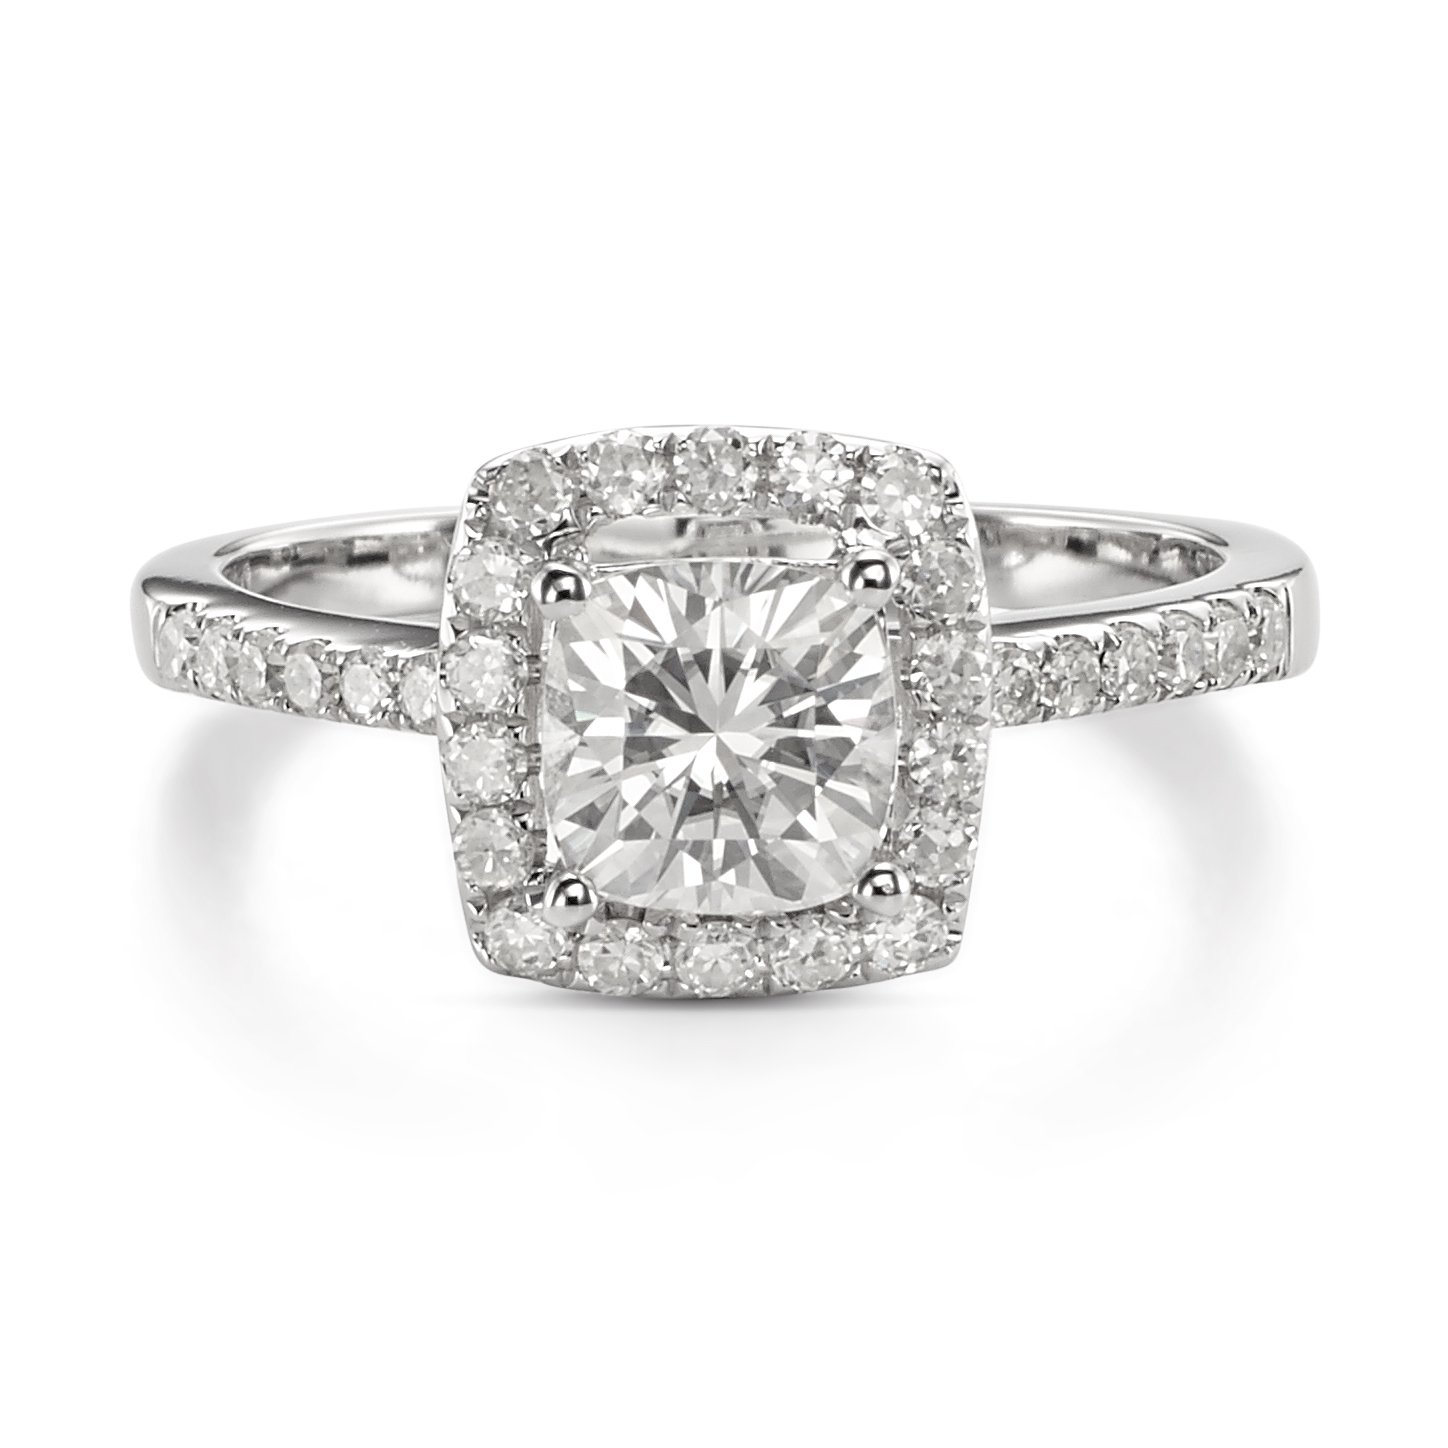 Forever One Cushion 6.0mm Moissanite Halo Ring-size 8, 1.40cttw DEW (G-H-I) By Charles & Colvard